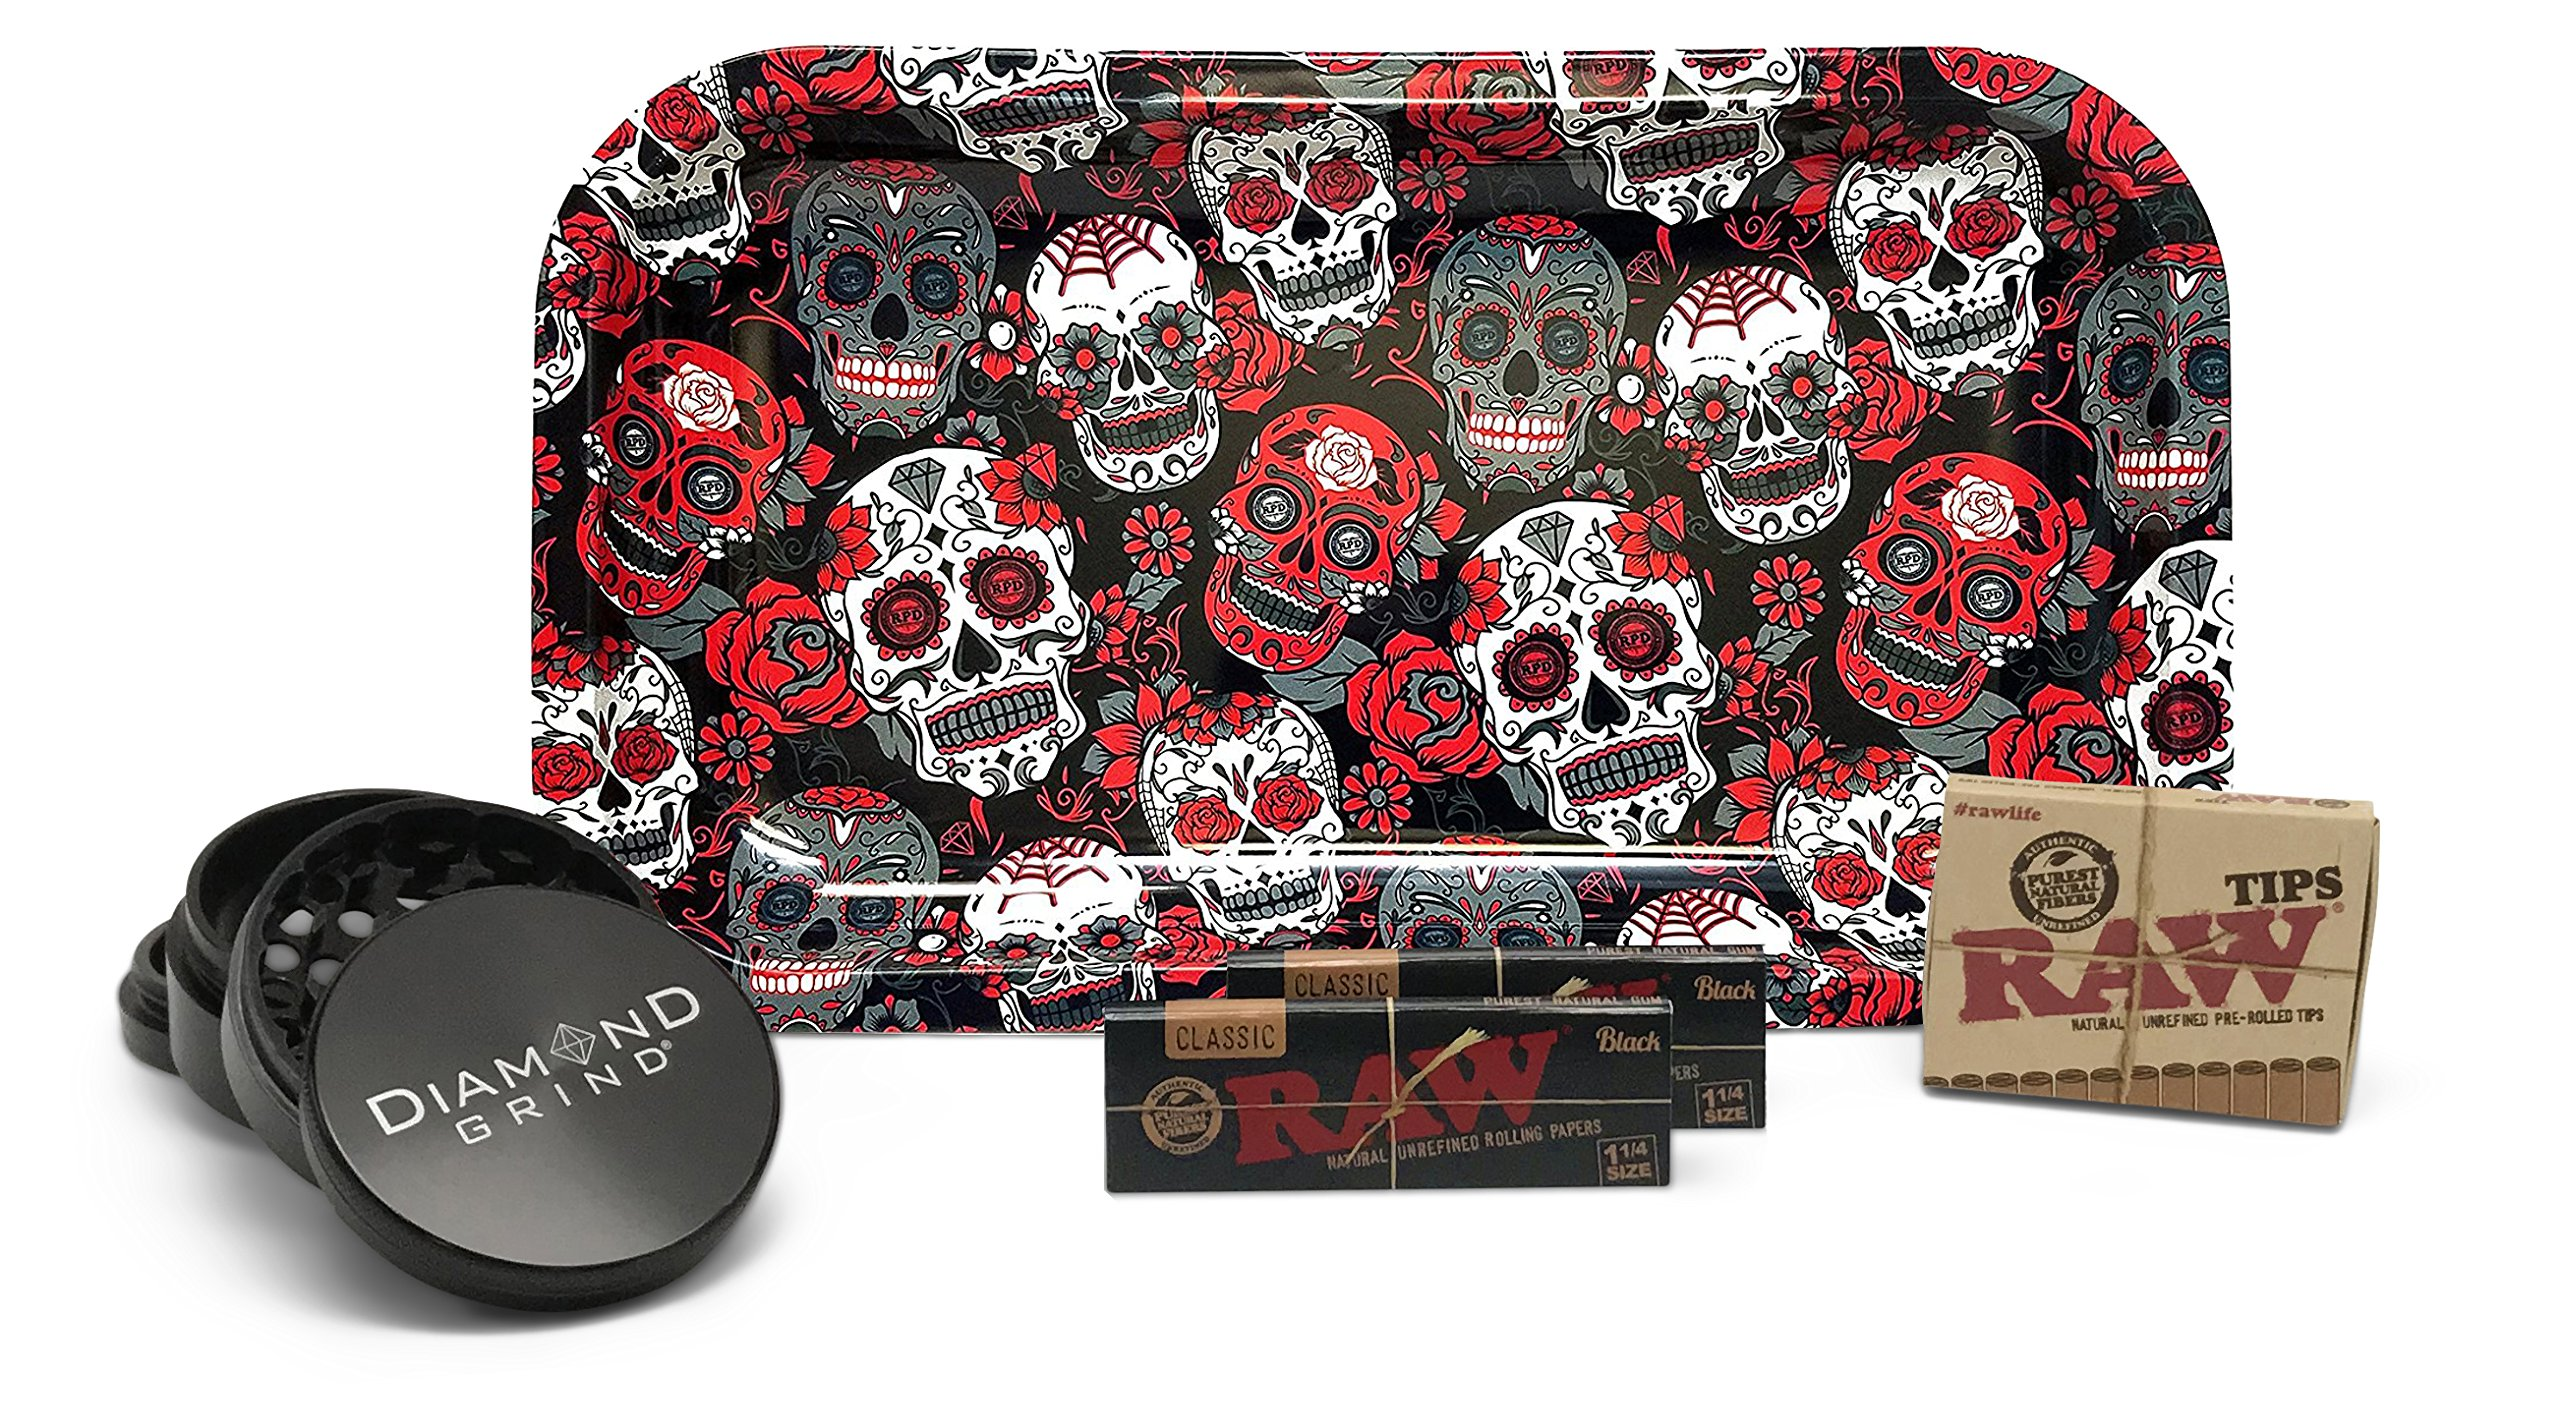 Diamond Grind 4 Piece 63mm Grinder (Black), RAW Black Natural Rolling Papers 1 1/4 (2 Packs), RAW Pre-Rolled Tips, Rolling Paper Depot Rolling Tray (Skulls) - 5 Item Bundle